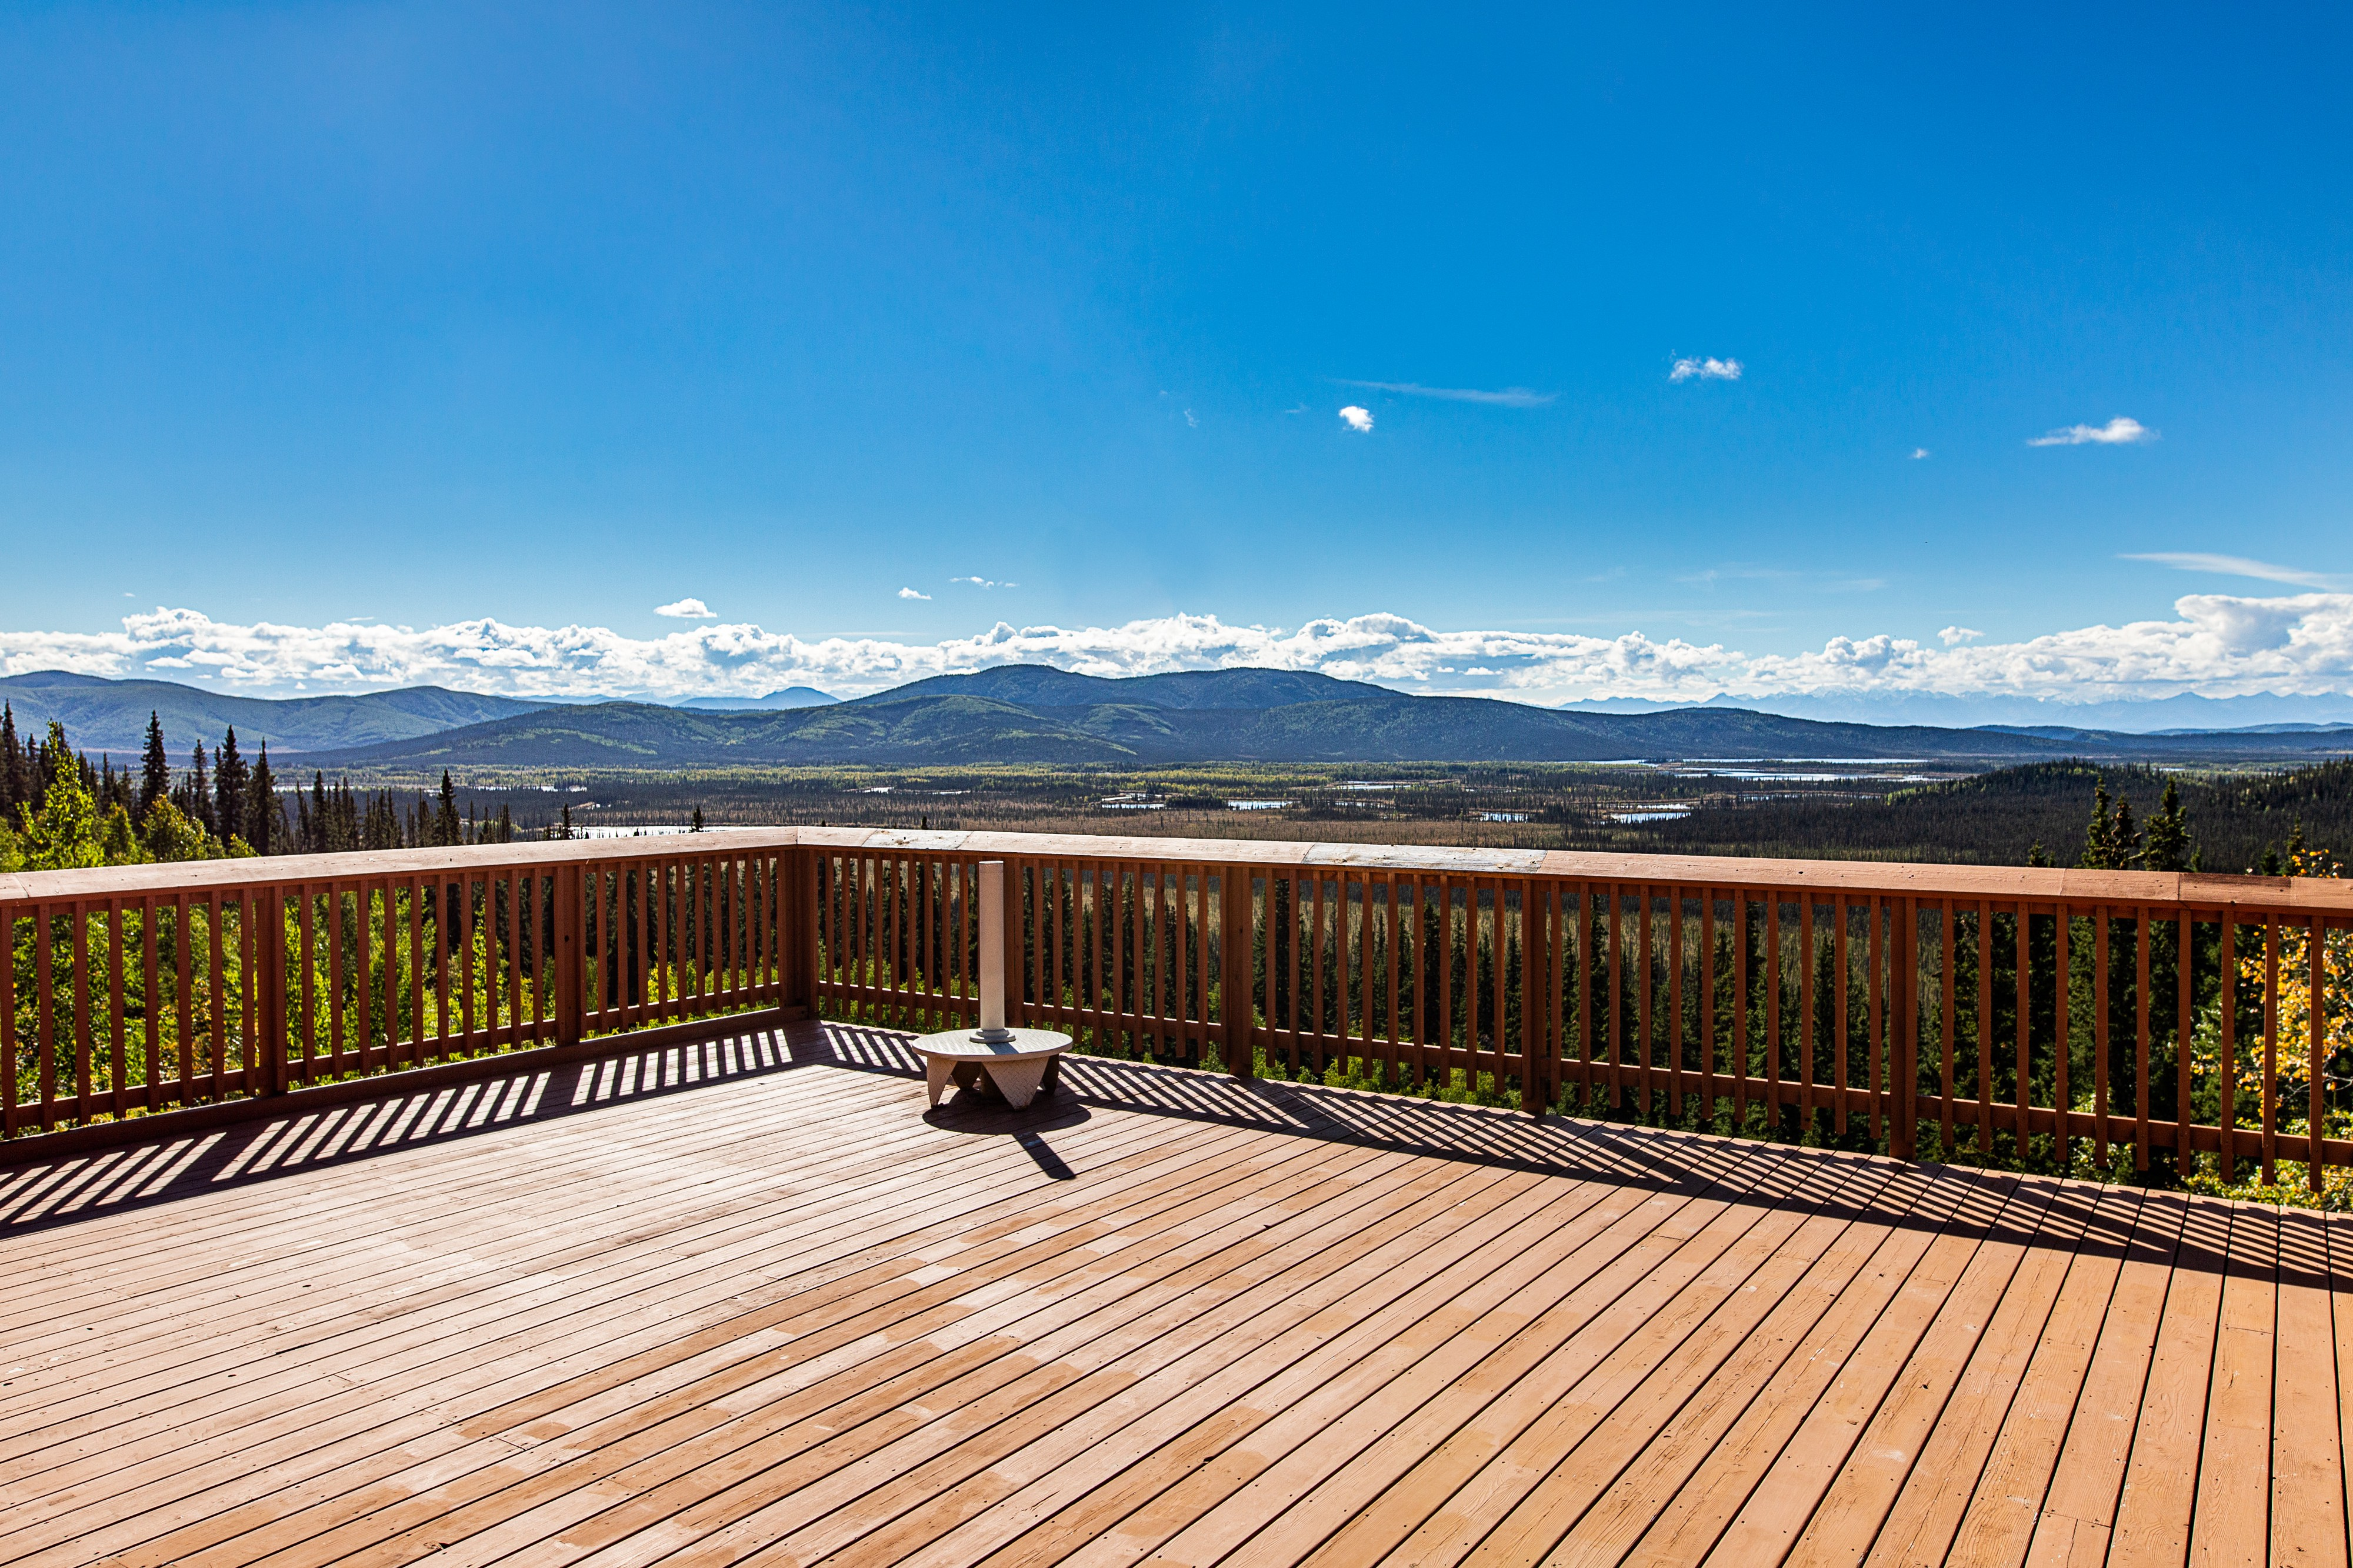 view of mountains/valley from Tetlin national wildlife refuge visitor center